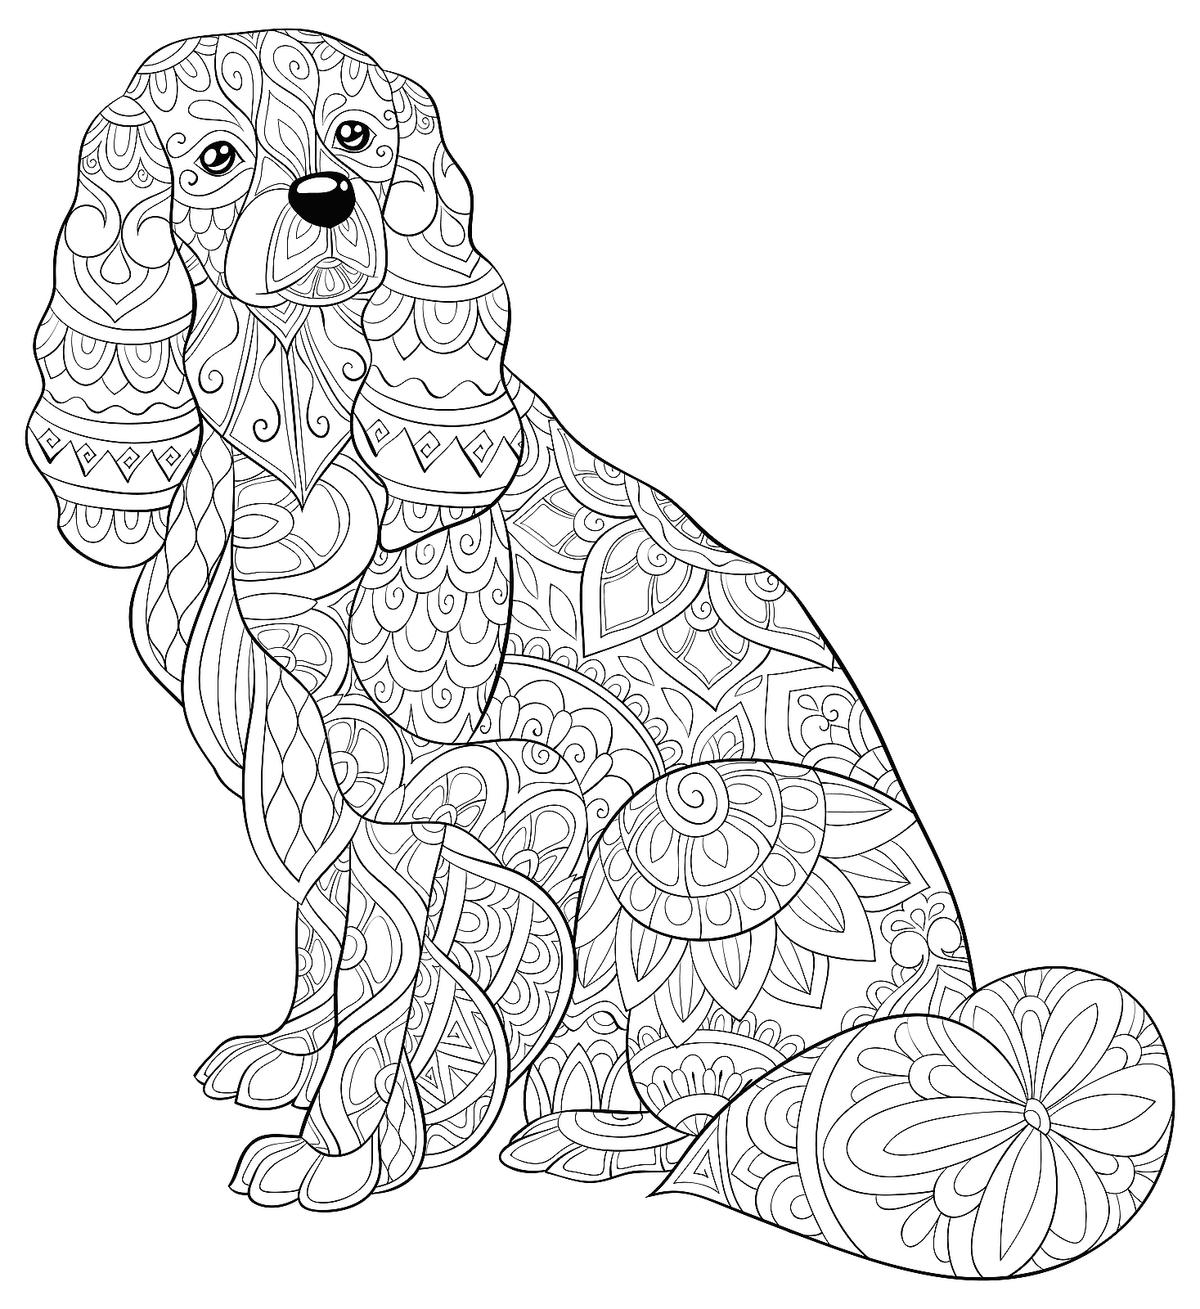 dog coloring free printable puppies coloring pages for kids dog coloring